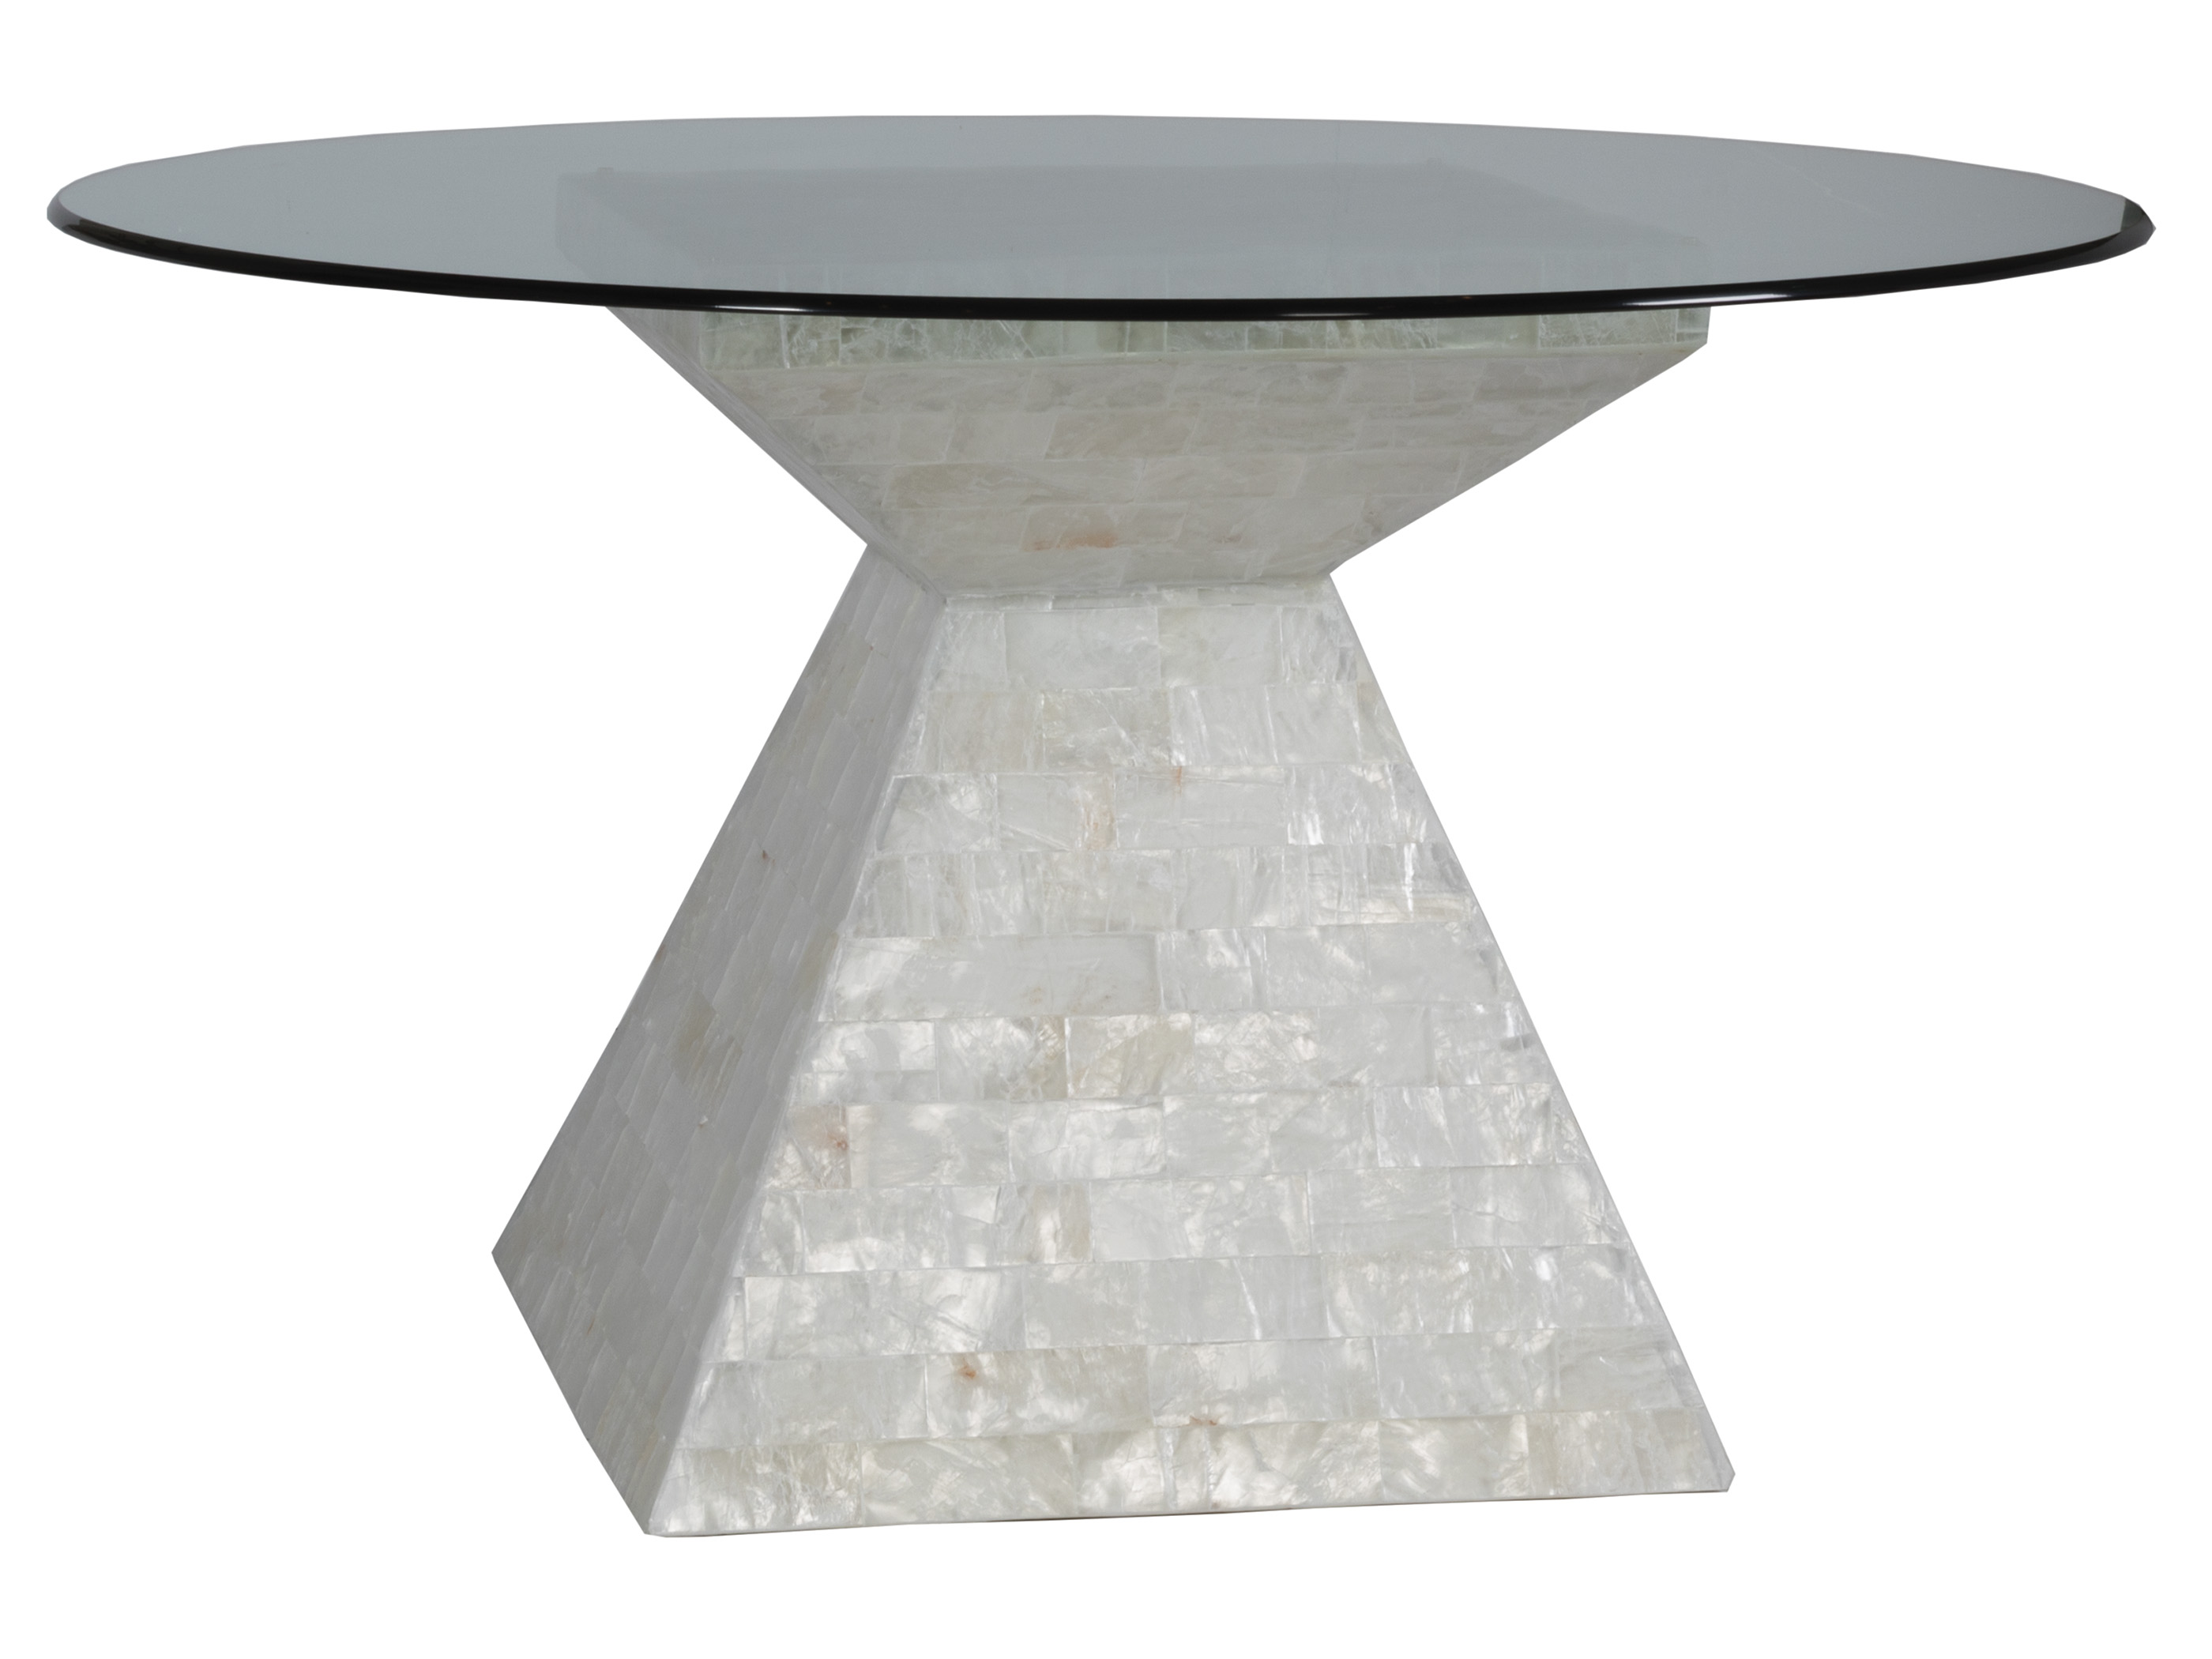 60 Inch Round Dining Table with Glass Top